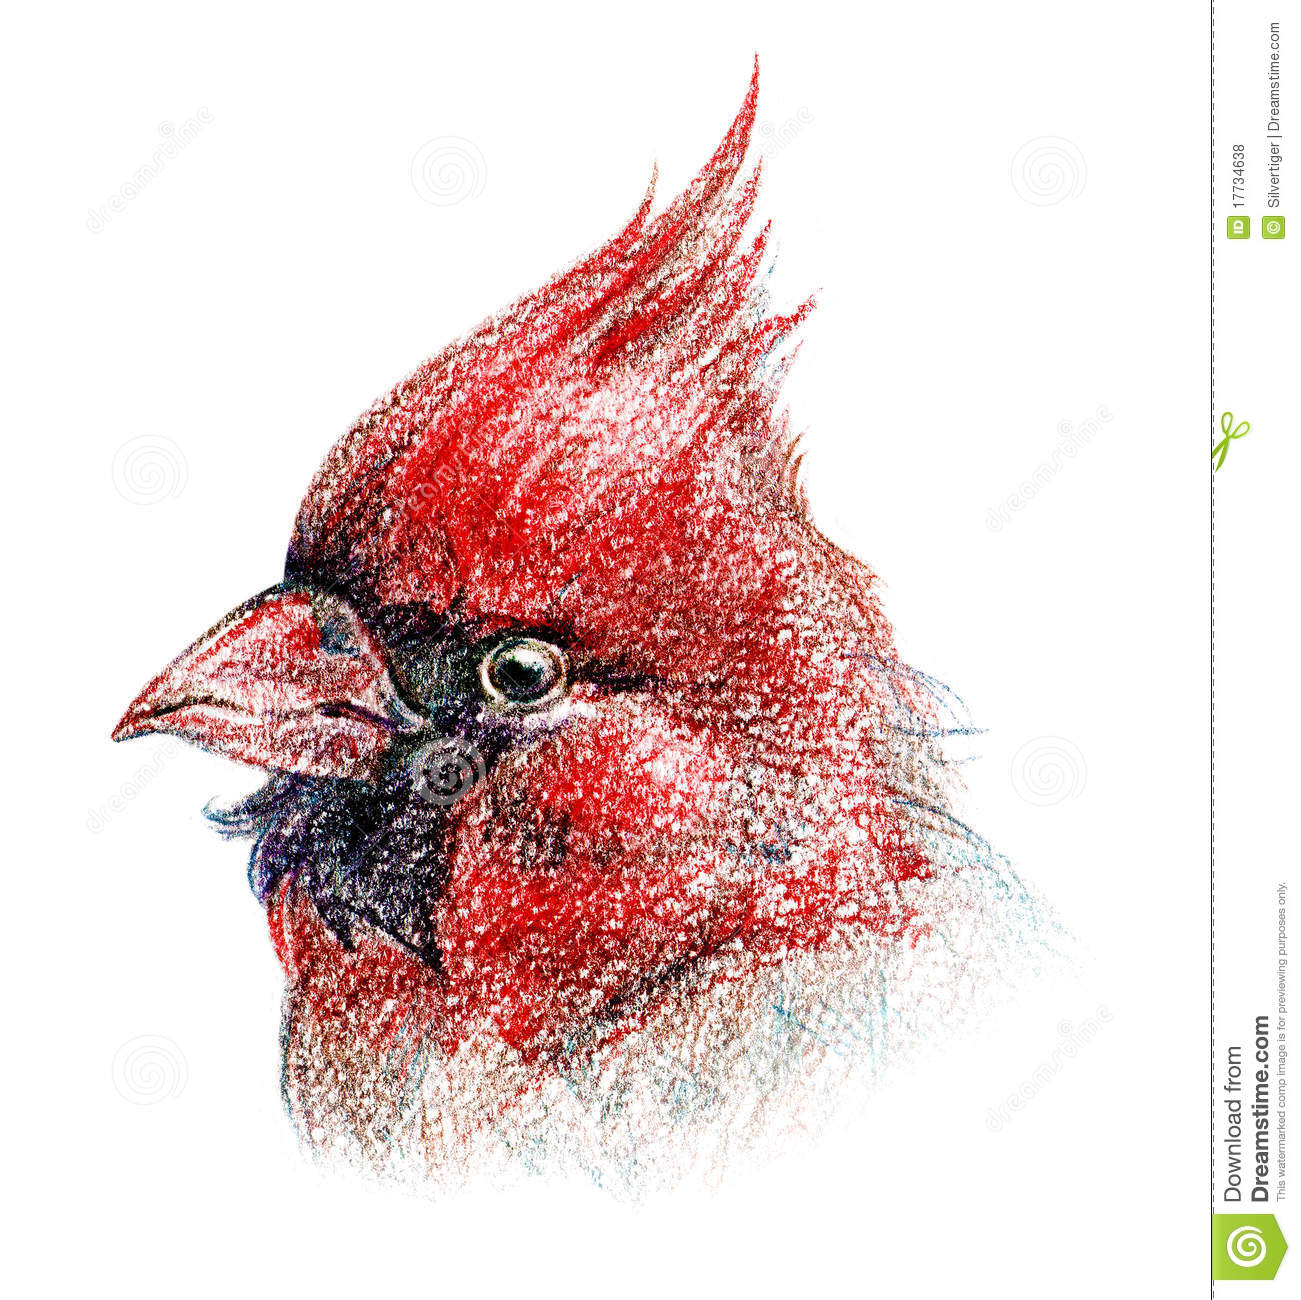 Red northern cardinal bird portrait pencil sketch